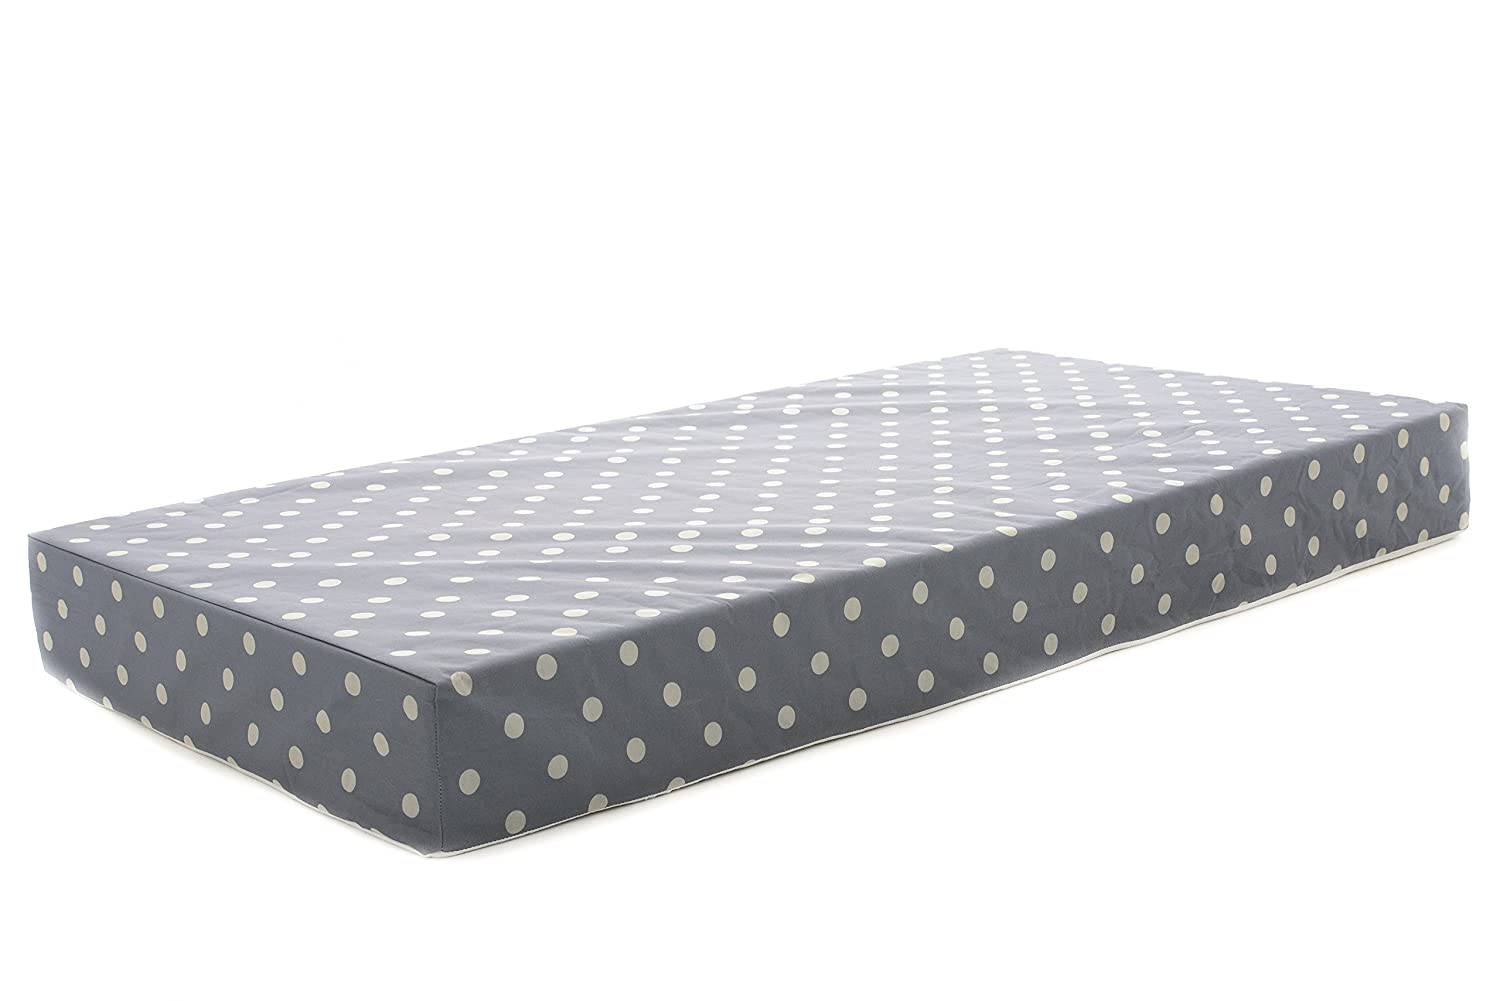 Milliard 12.5cm Hypoallergenic Foam Baby Cot Mattress/Crib Mattress with Waterproof Cover, Extra Thick for Extra Comfort and Support - (Cot Mattress 120cm x 60cm)